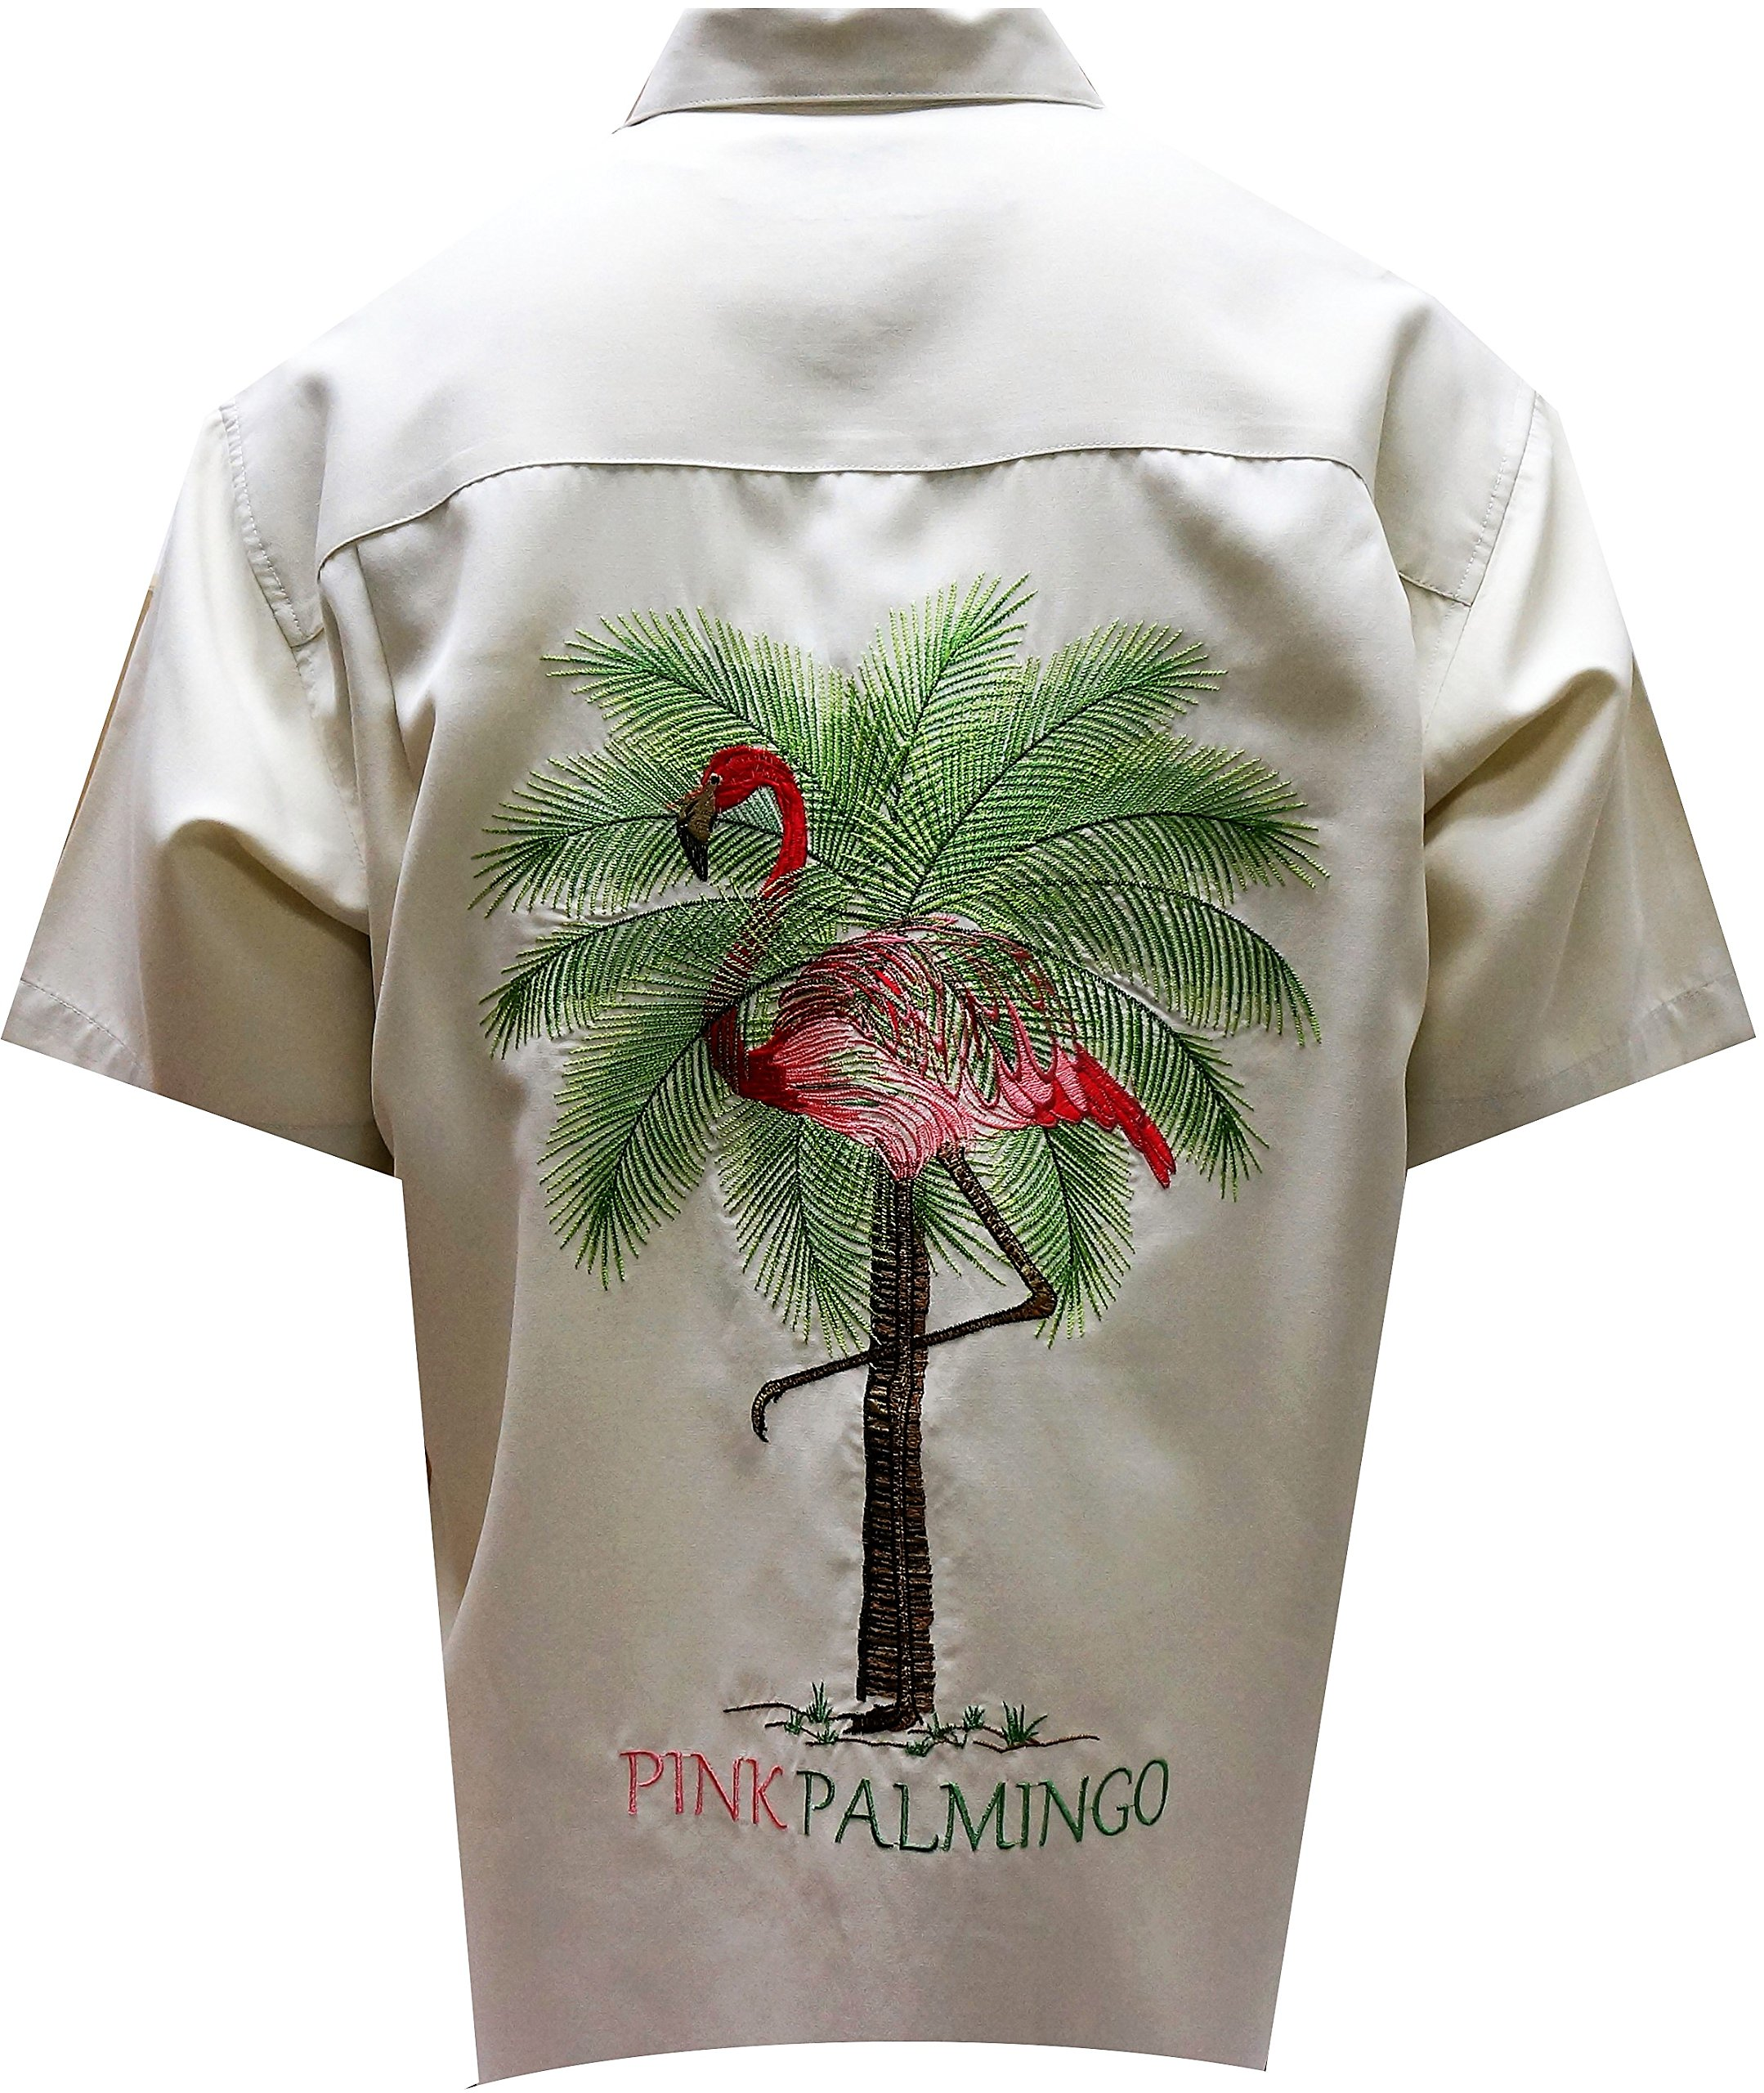 Bamboo Cay - Men's Pink Palmingo, Embroidered Tropical Style Shirt (X-Large, Cream)